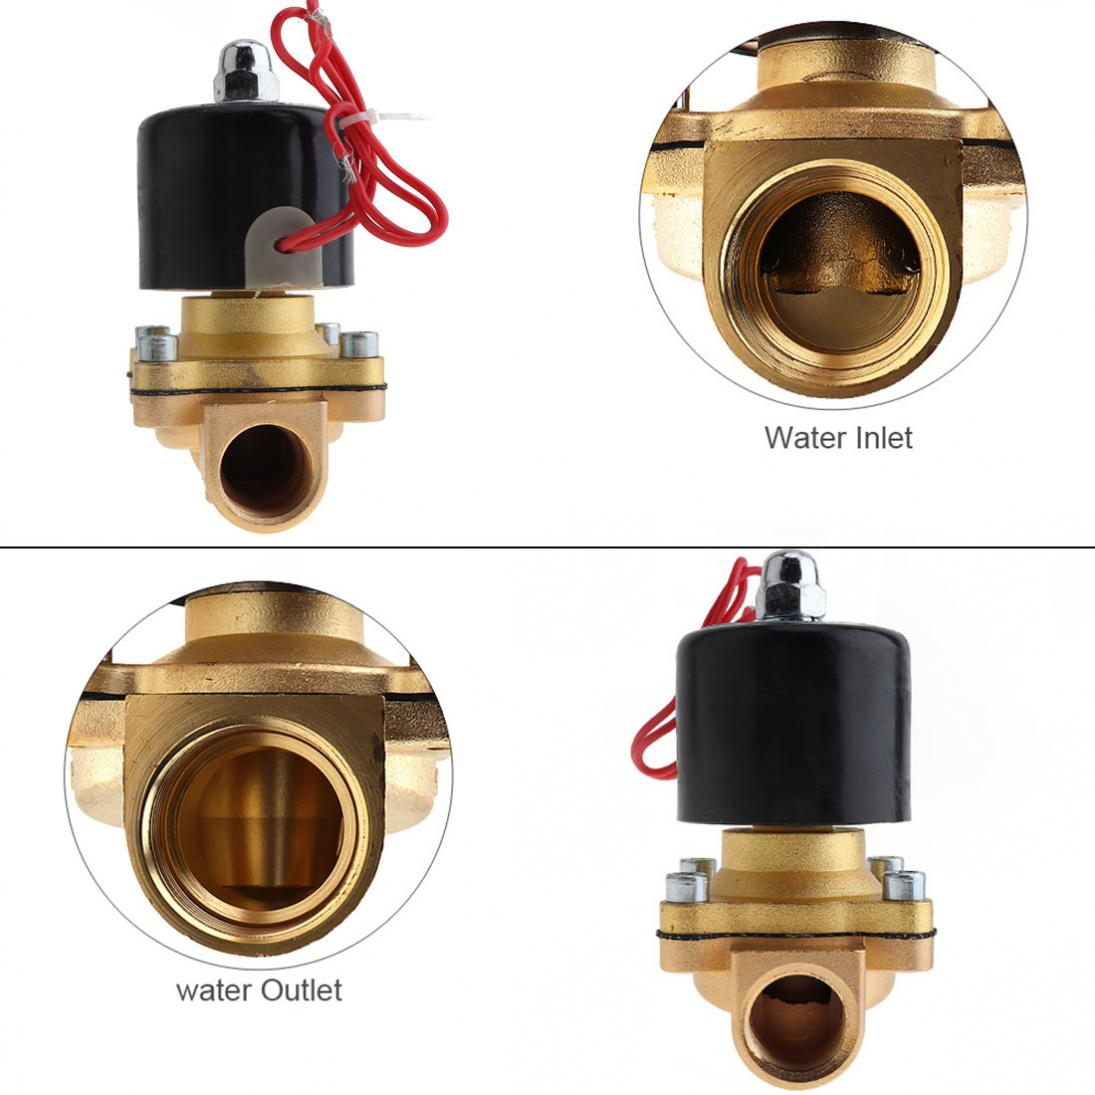 1-2-039-039-DC12-Brass-Electric-Solenoid-Valve-N-C-Gas-Water-Fuel-Air-Solid-Coil-New thumbnail 8